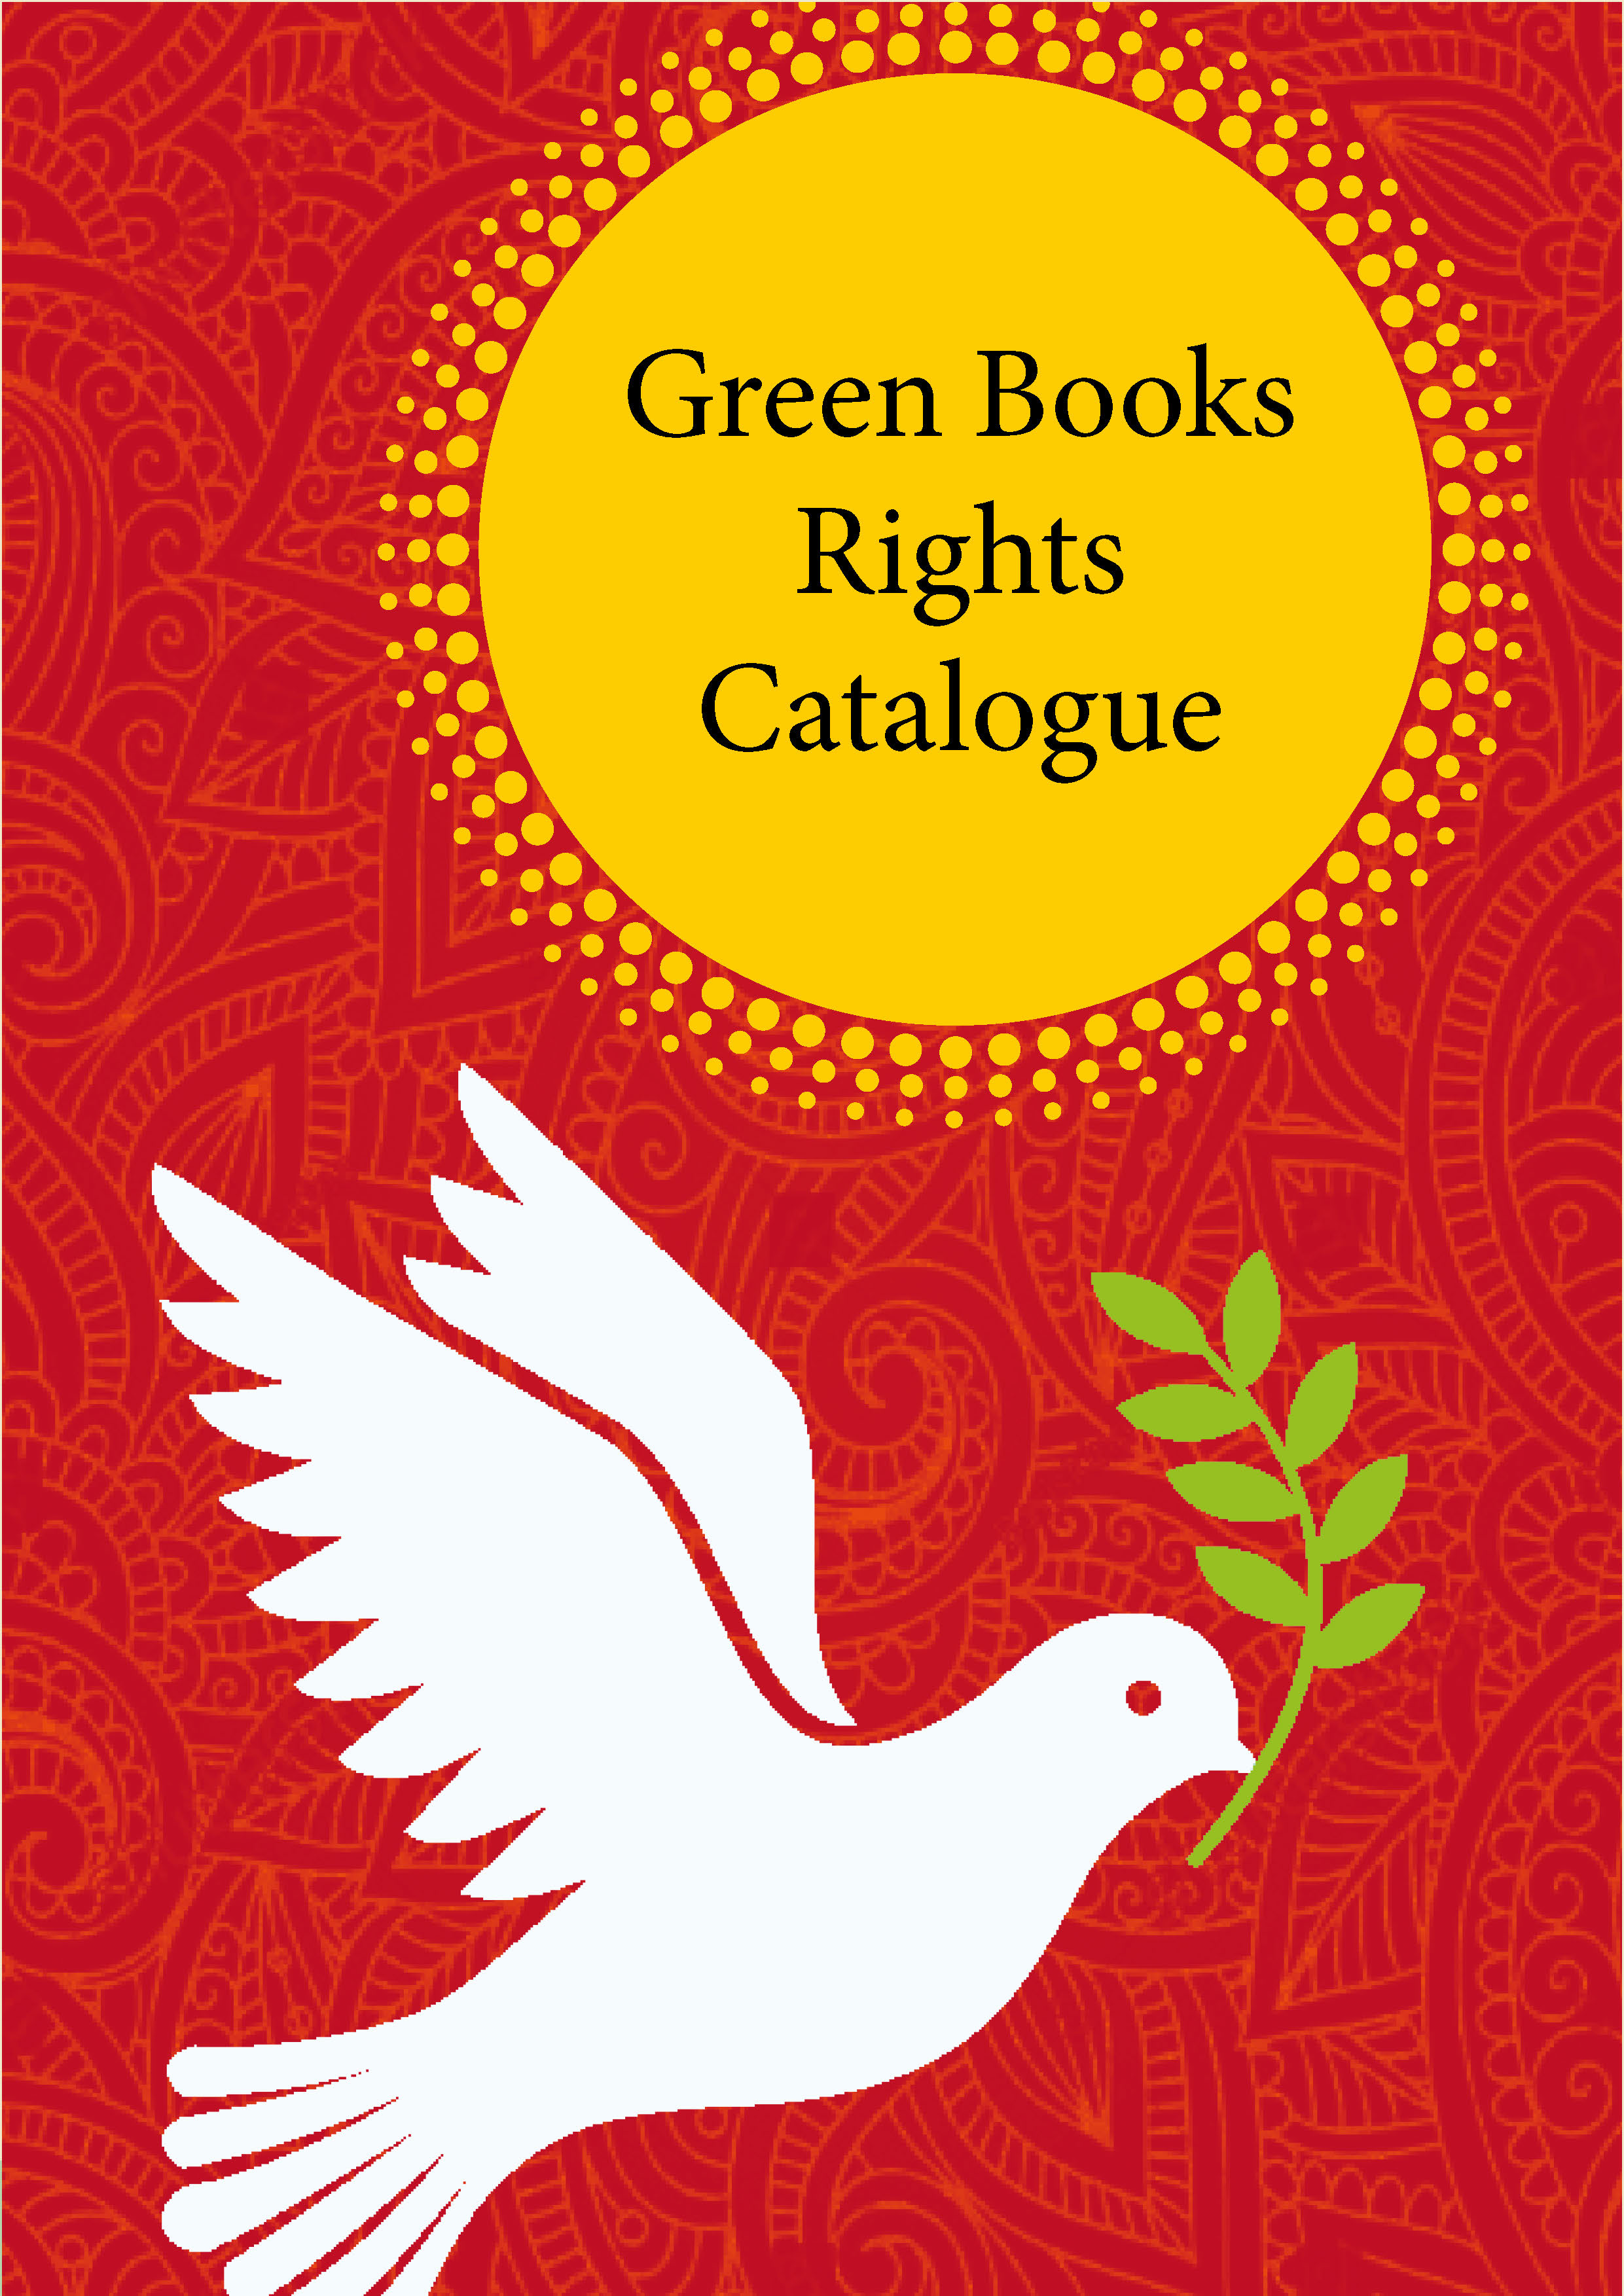 Green Books - GreenBooks rights catalogue 2020 cover